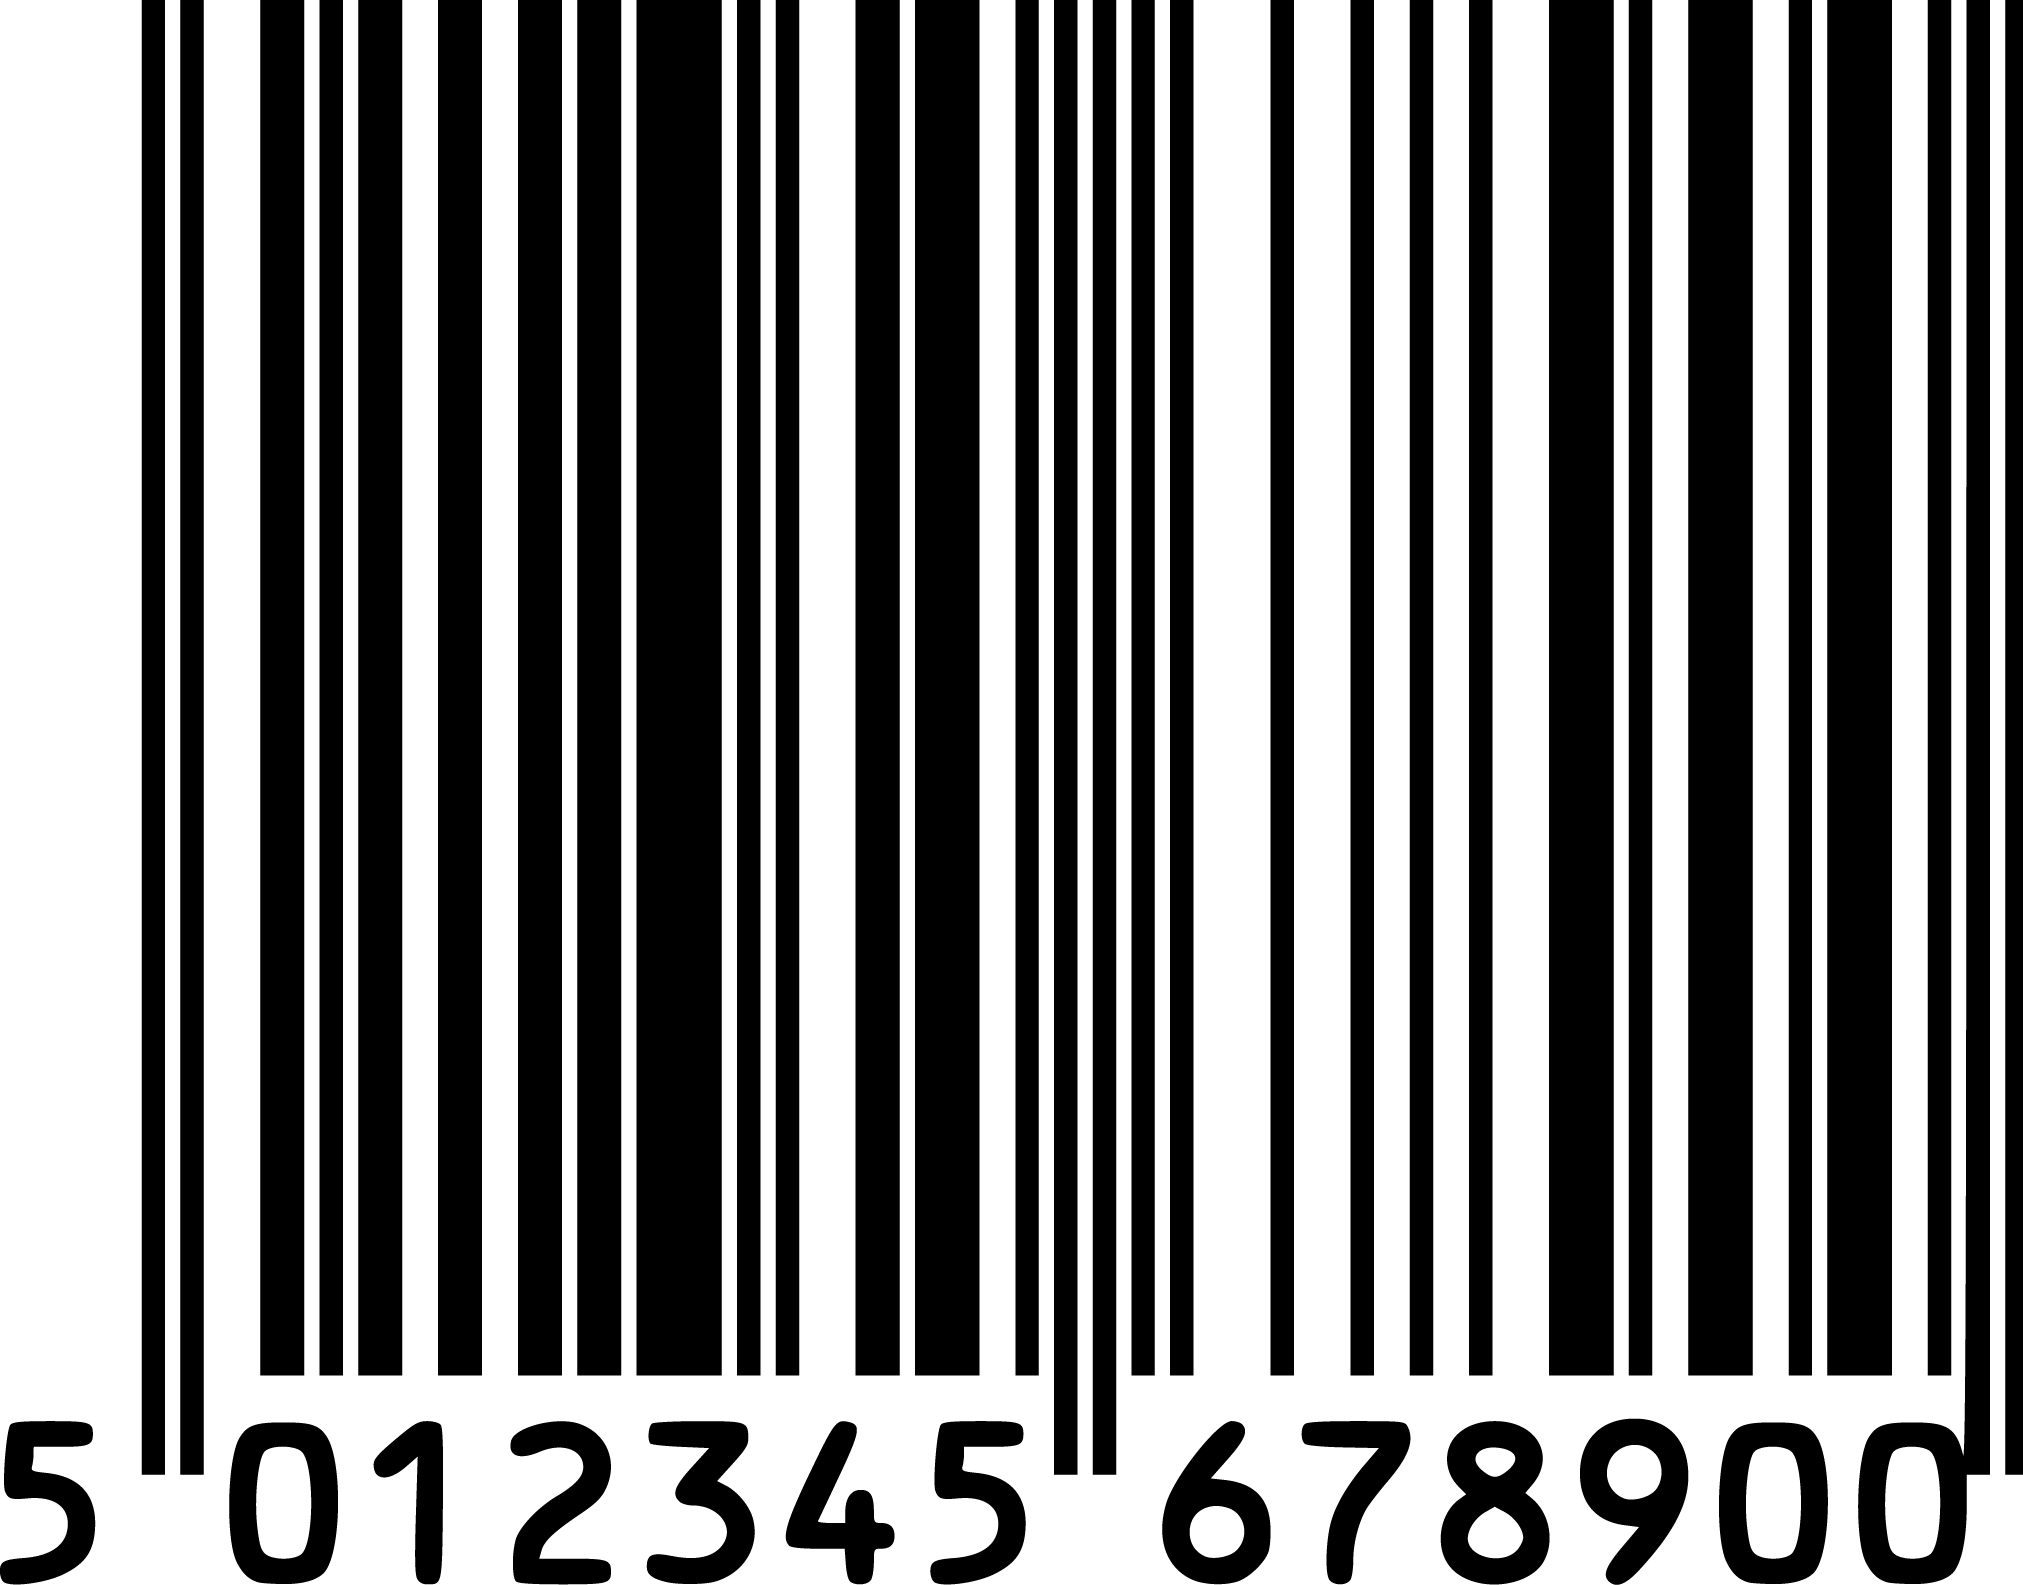 Barcode SVG/PNG File png